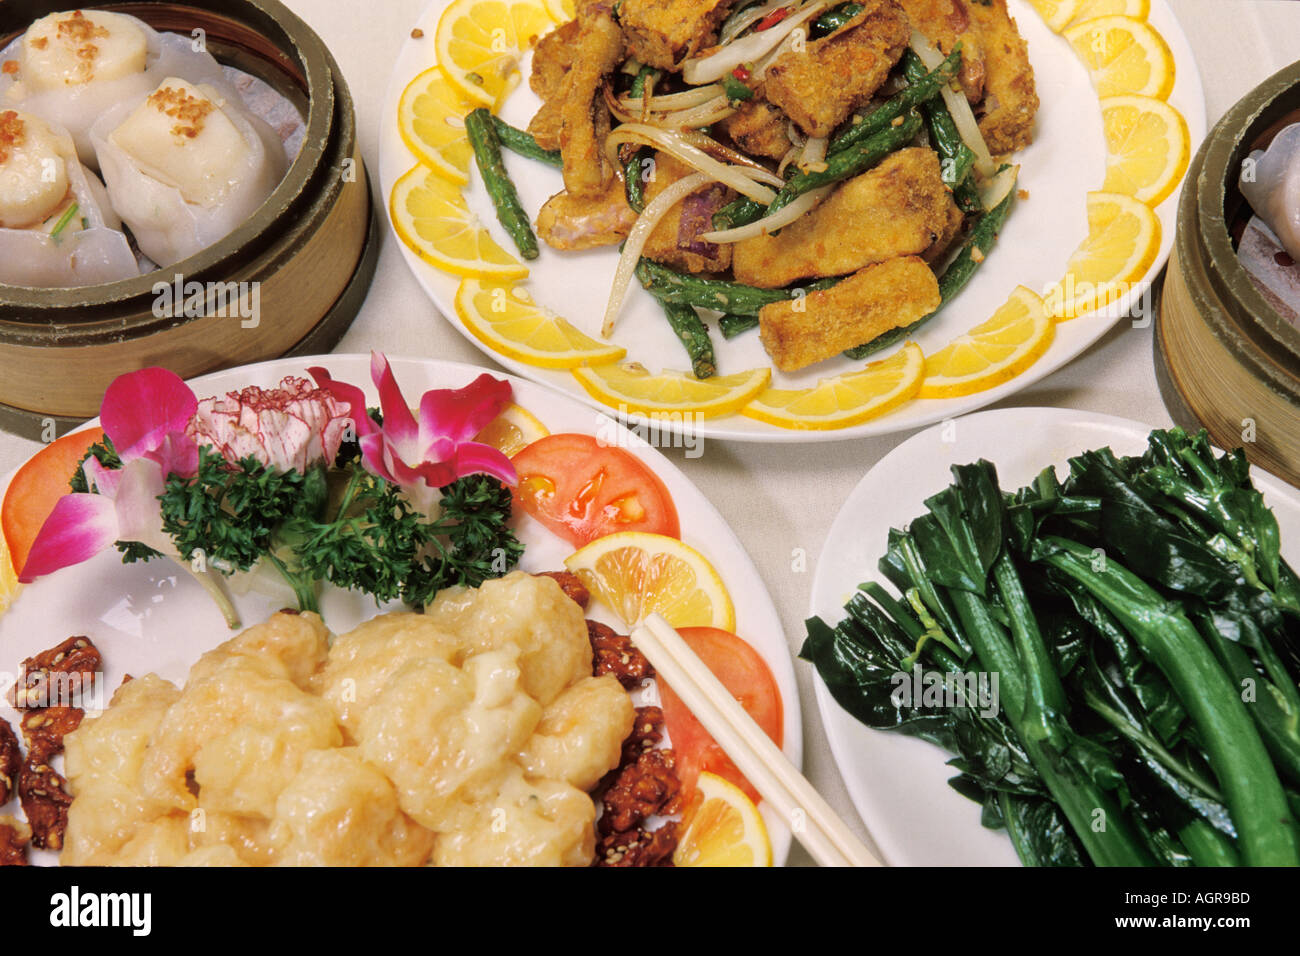 Food, Dim Sum Stock Photo